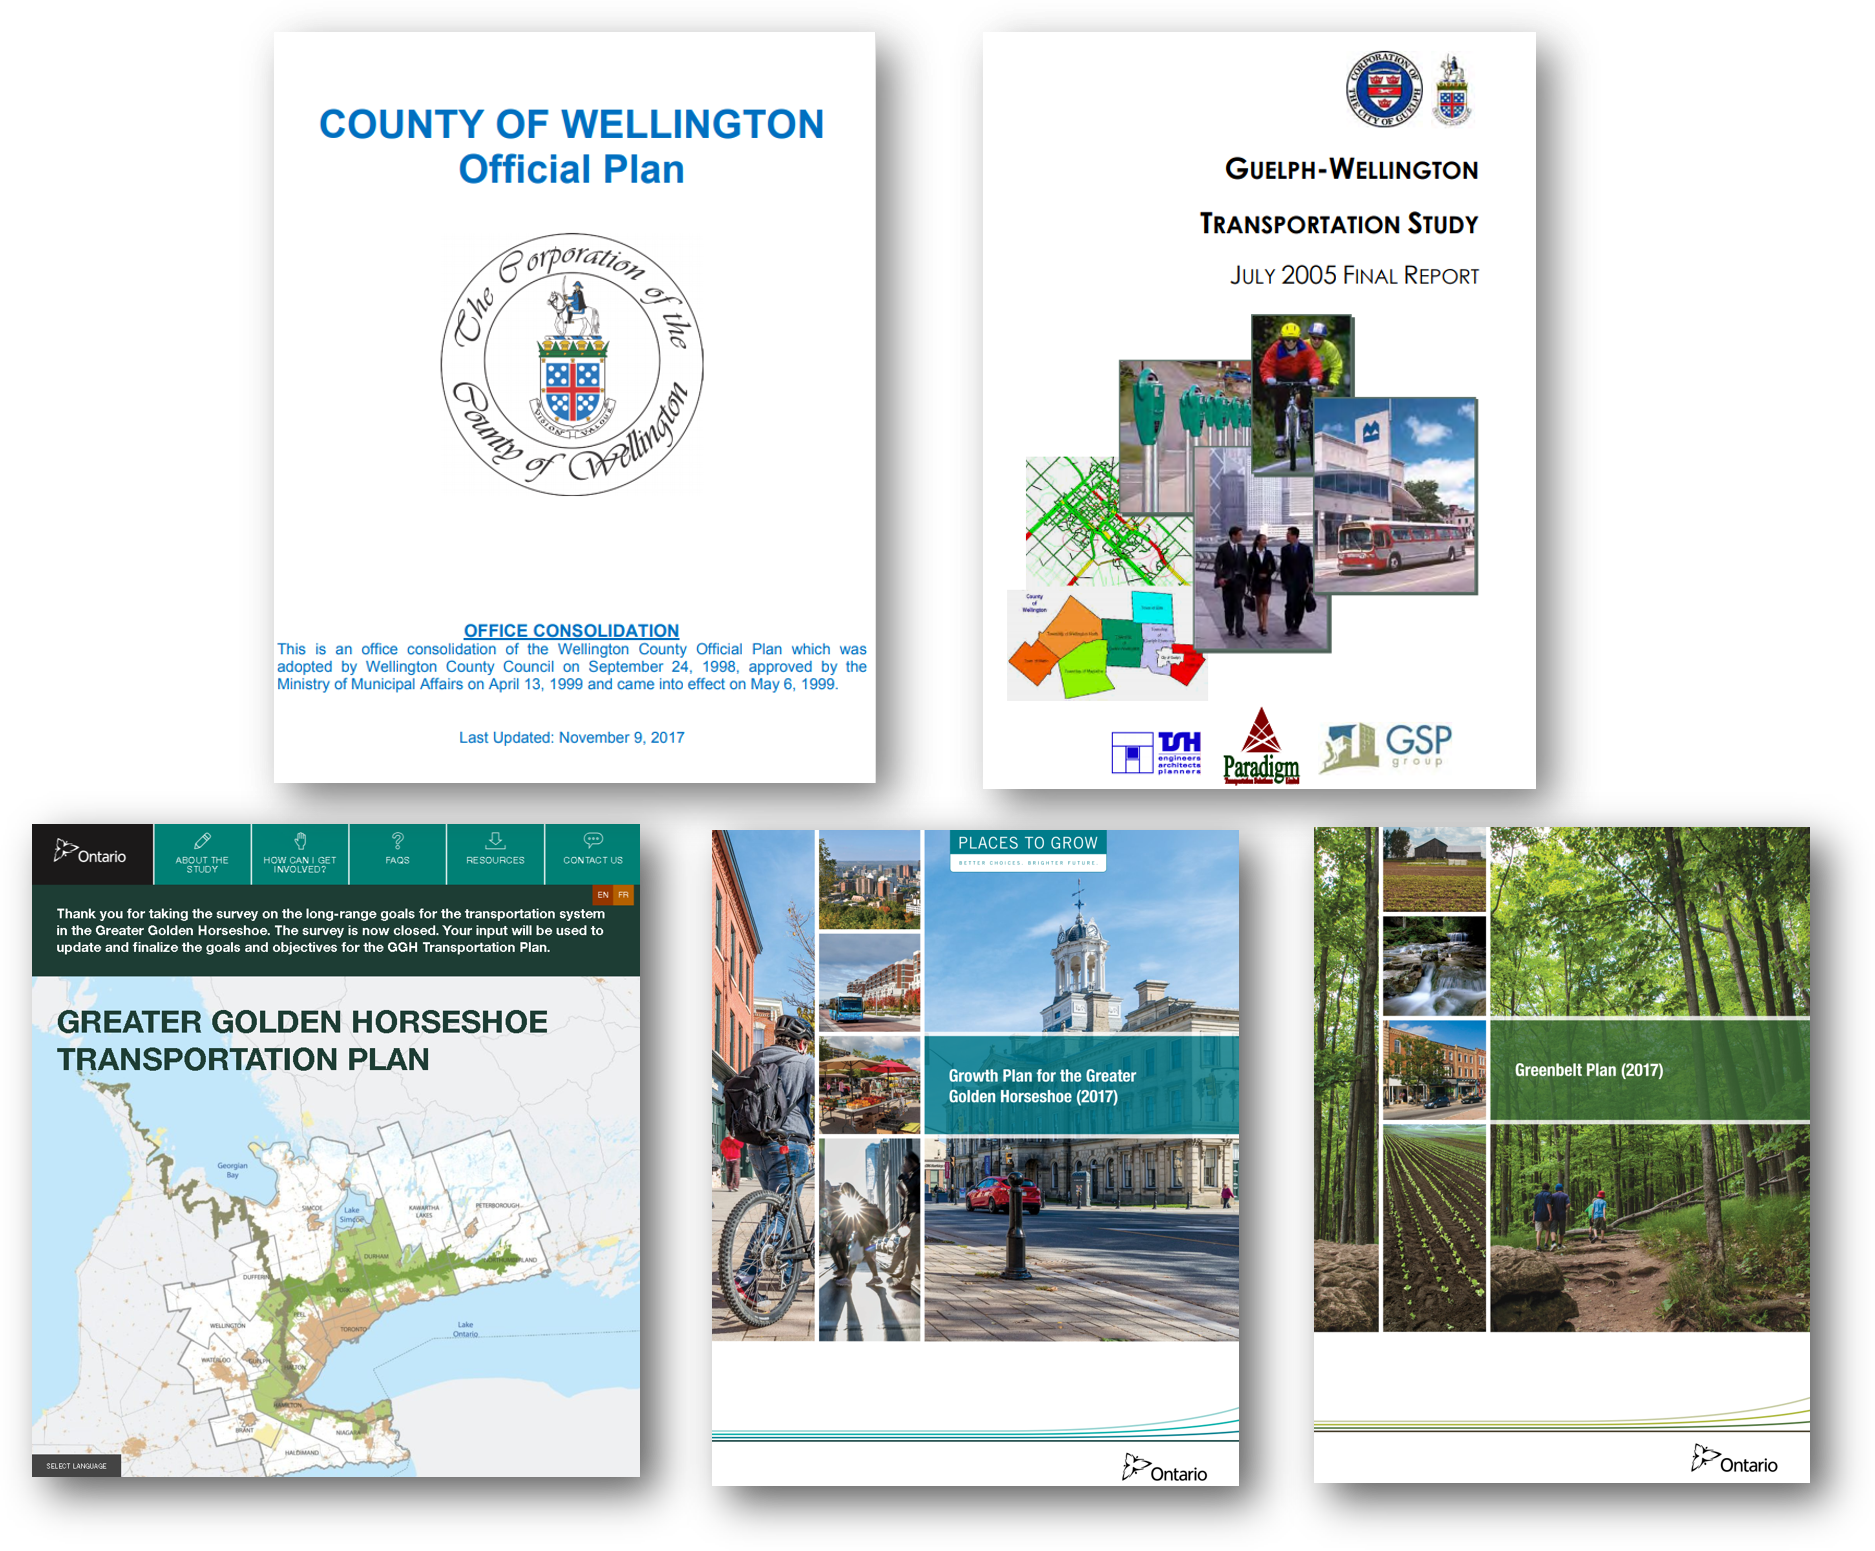 Photos of the covers of the various regional planning documents.